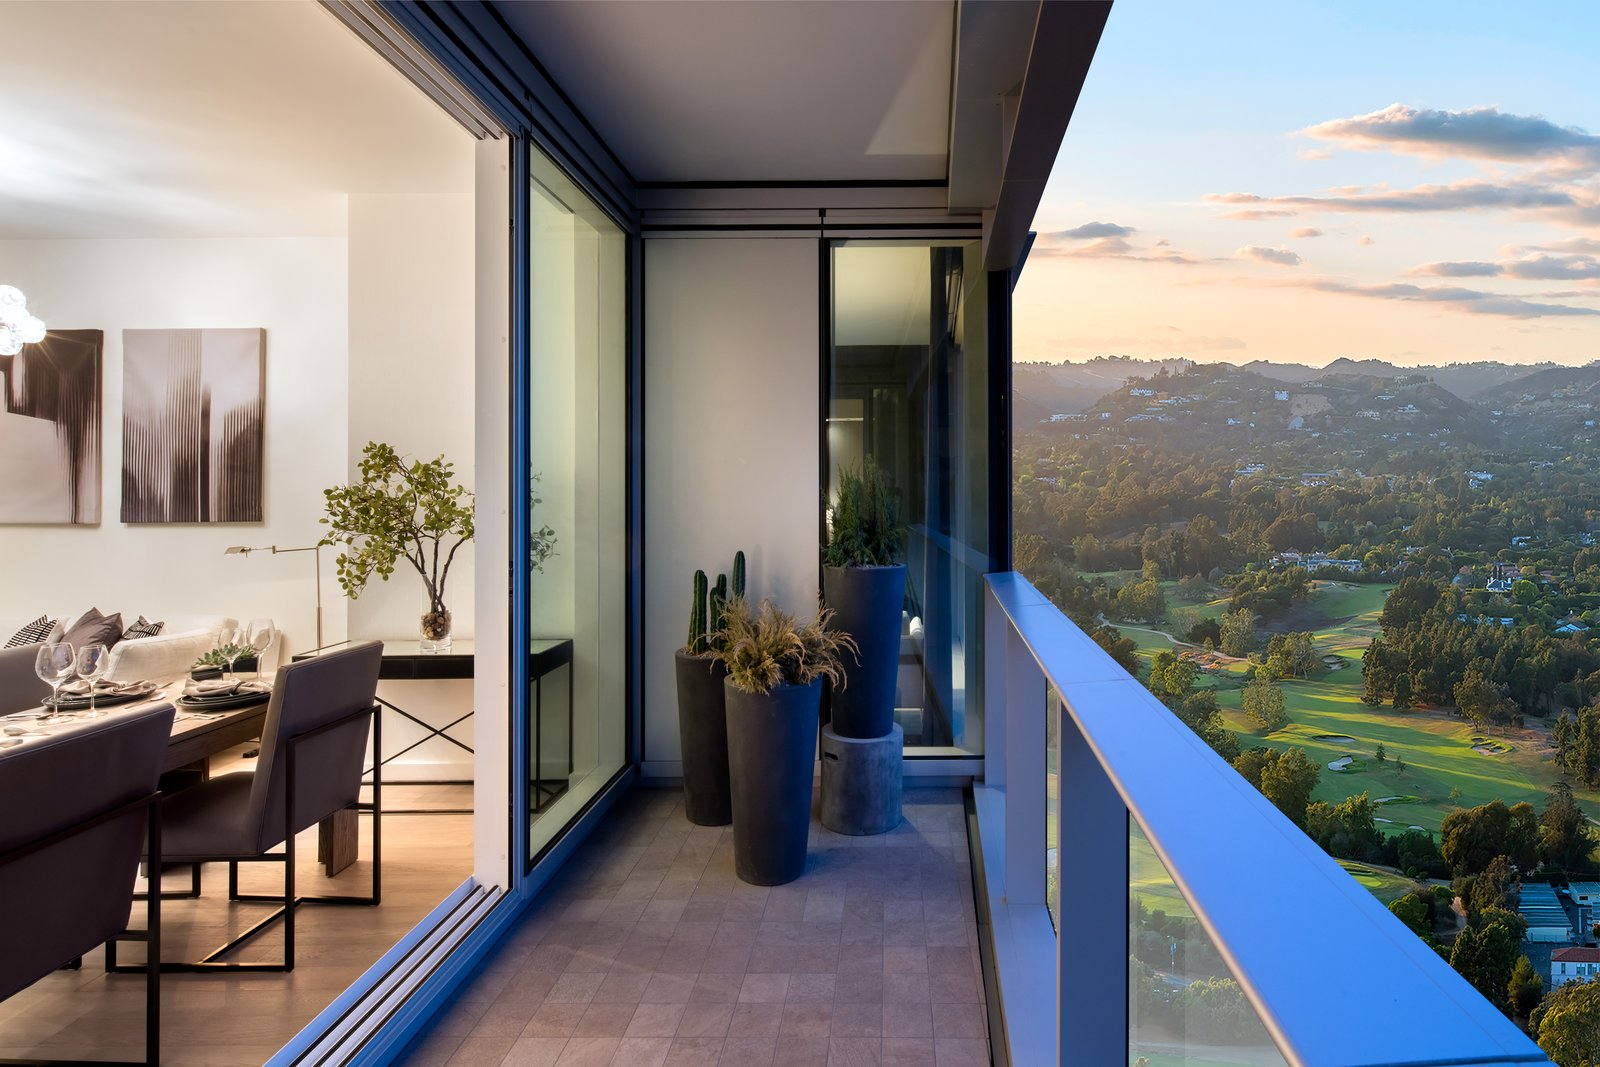 Ten Thousand brings functional modernism to the forefront with chic living spaces drawing the eye to the sweeping views of the Los Angeles Country Club just outside the residence's floor-to-ceiling windows.   Ten Thousand Unveils First Look at Life Inside the Elegant Los Angeles Tower